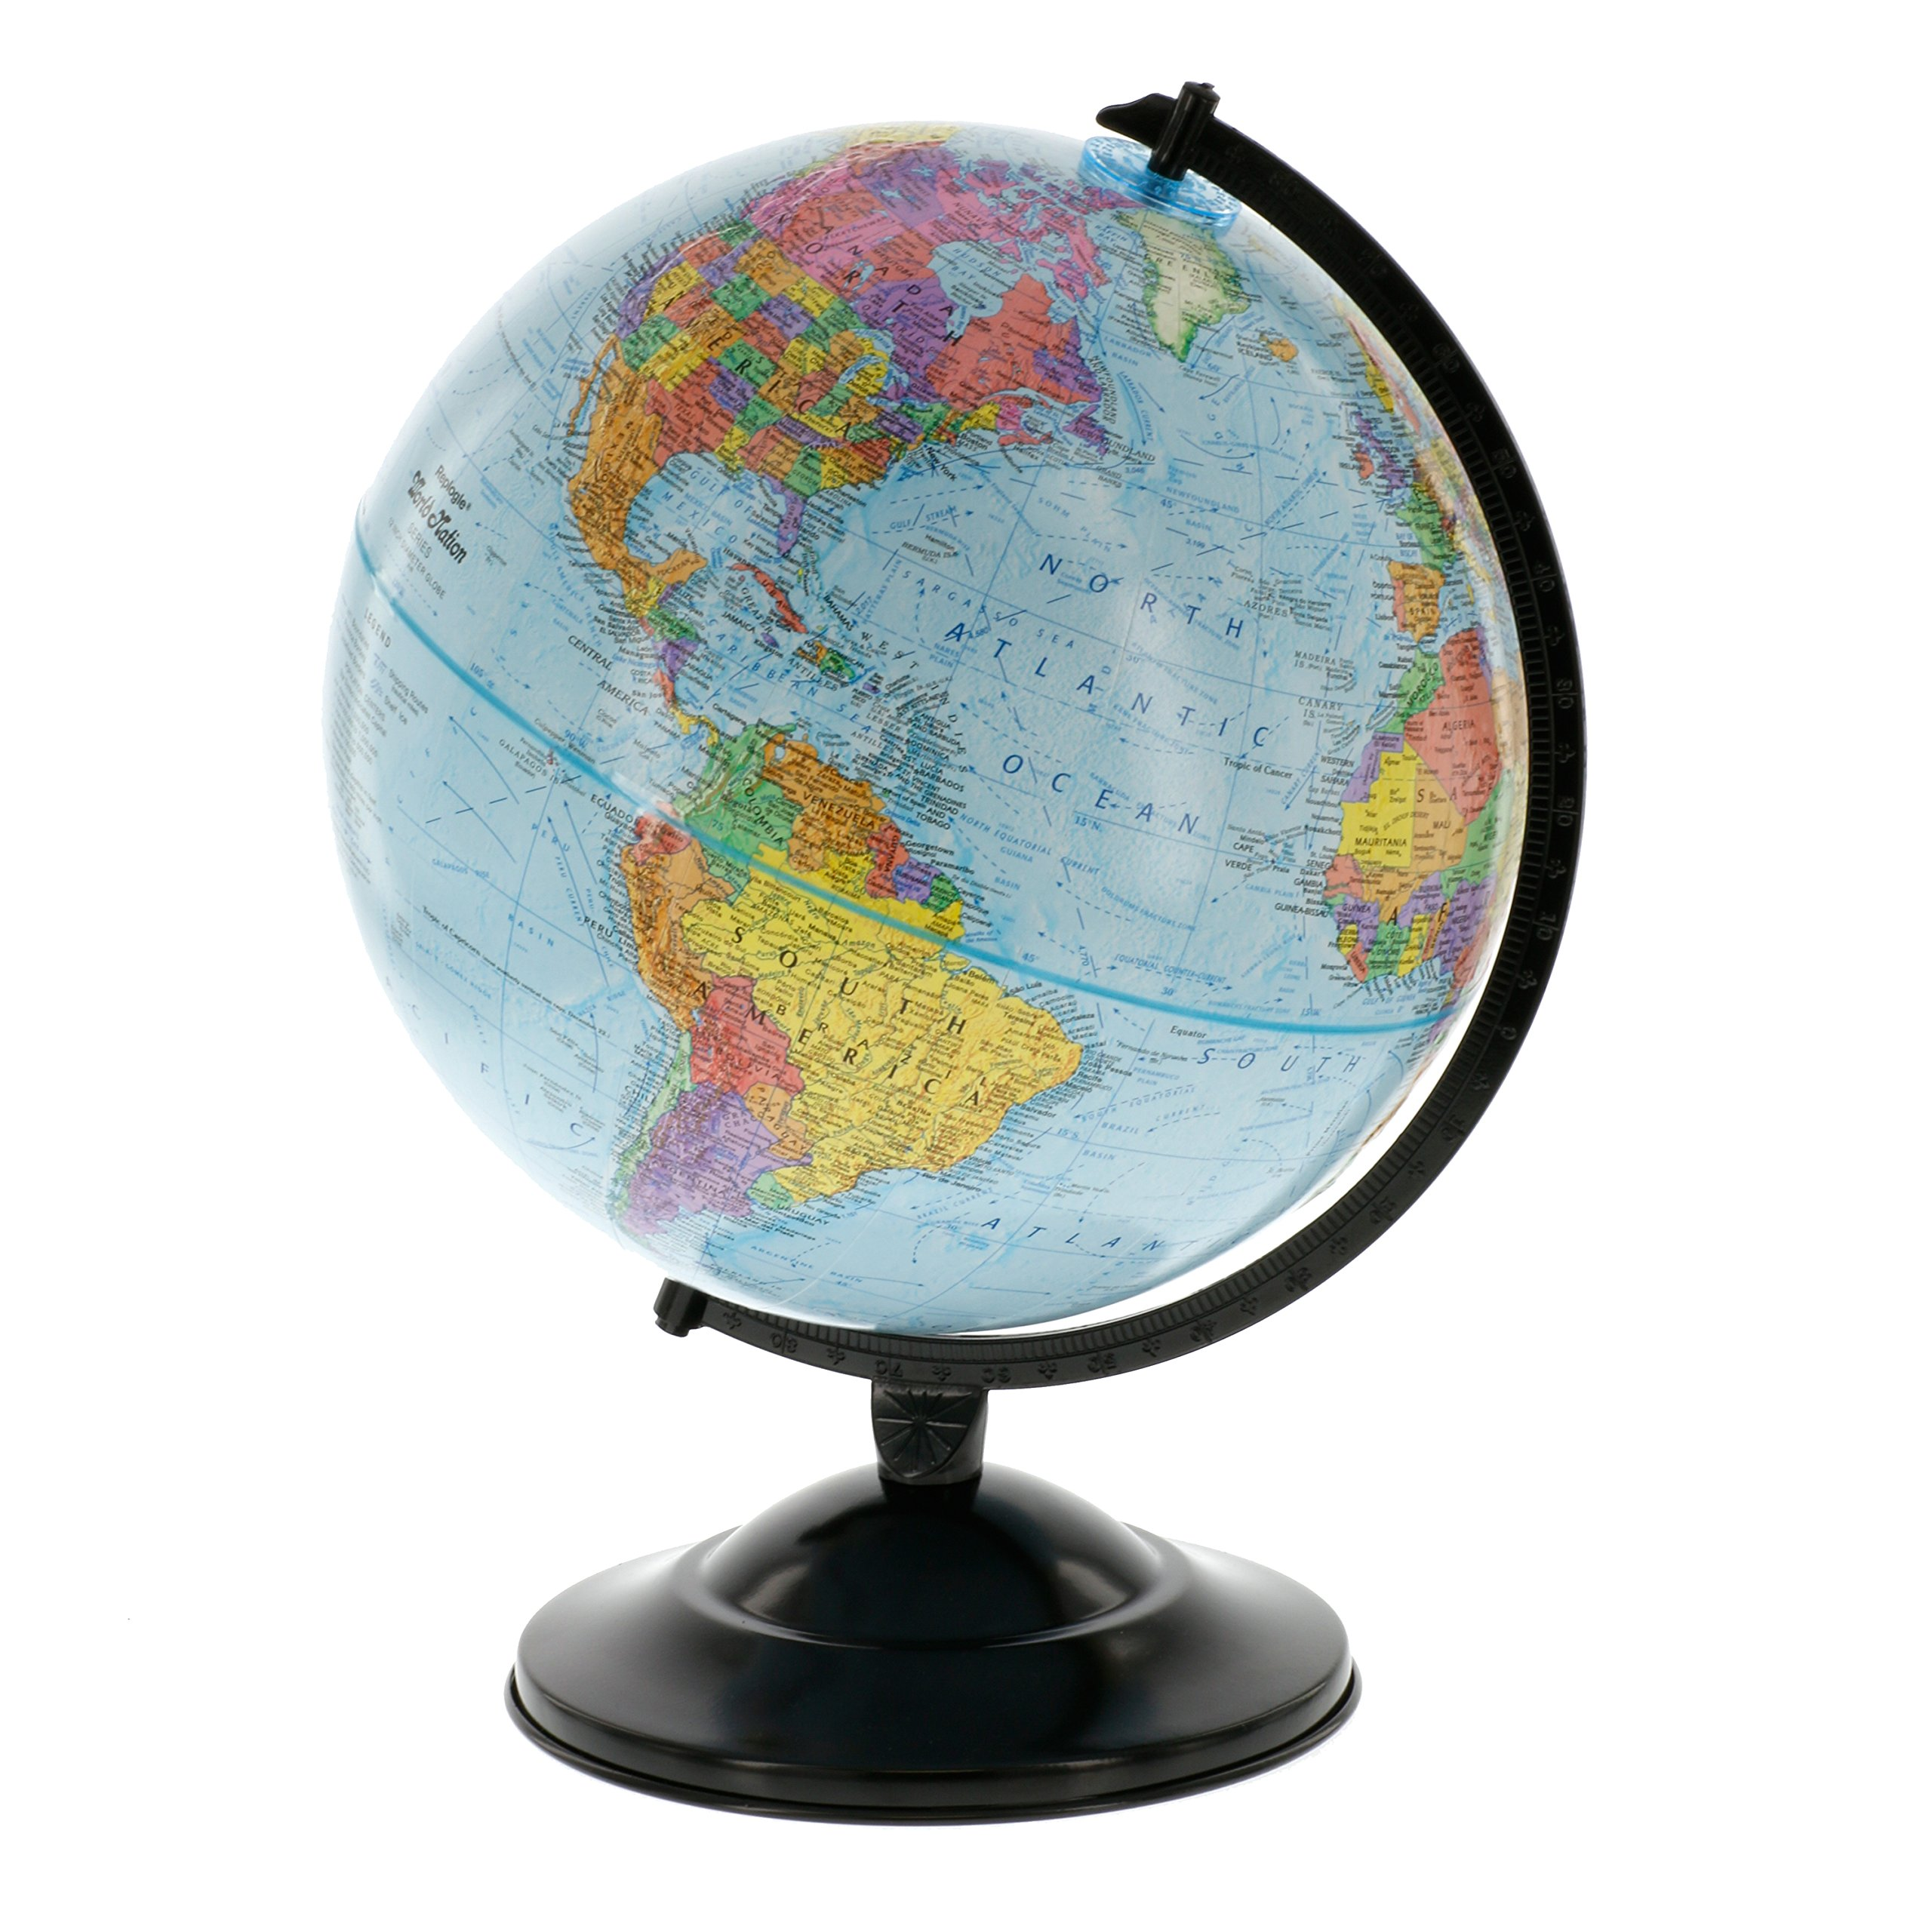 Globe 12 inch - Blue Ocean Educational Raised Relief Political - 2015 Country Lines